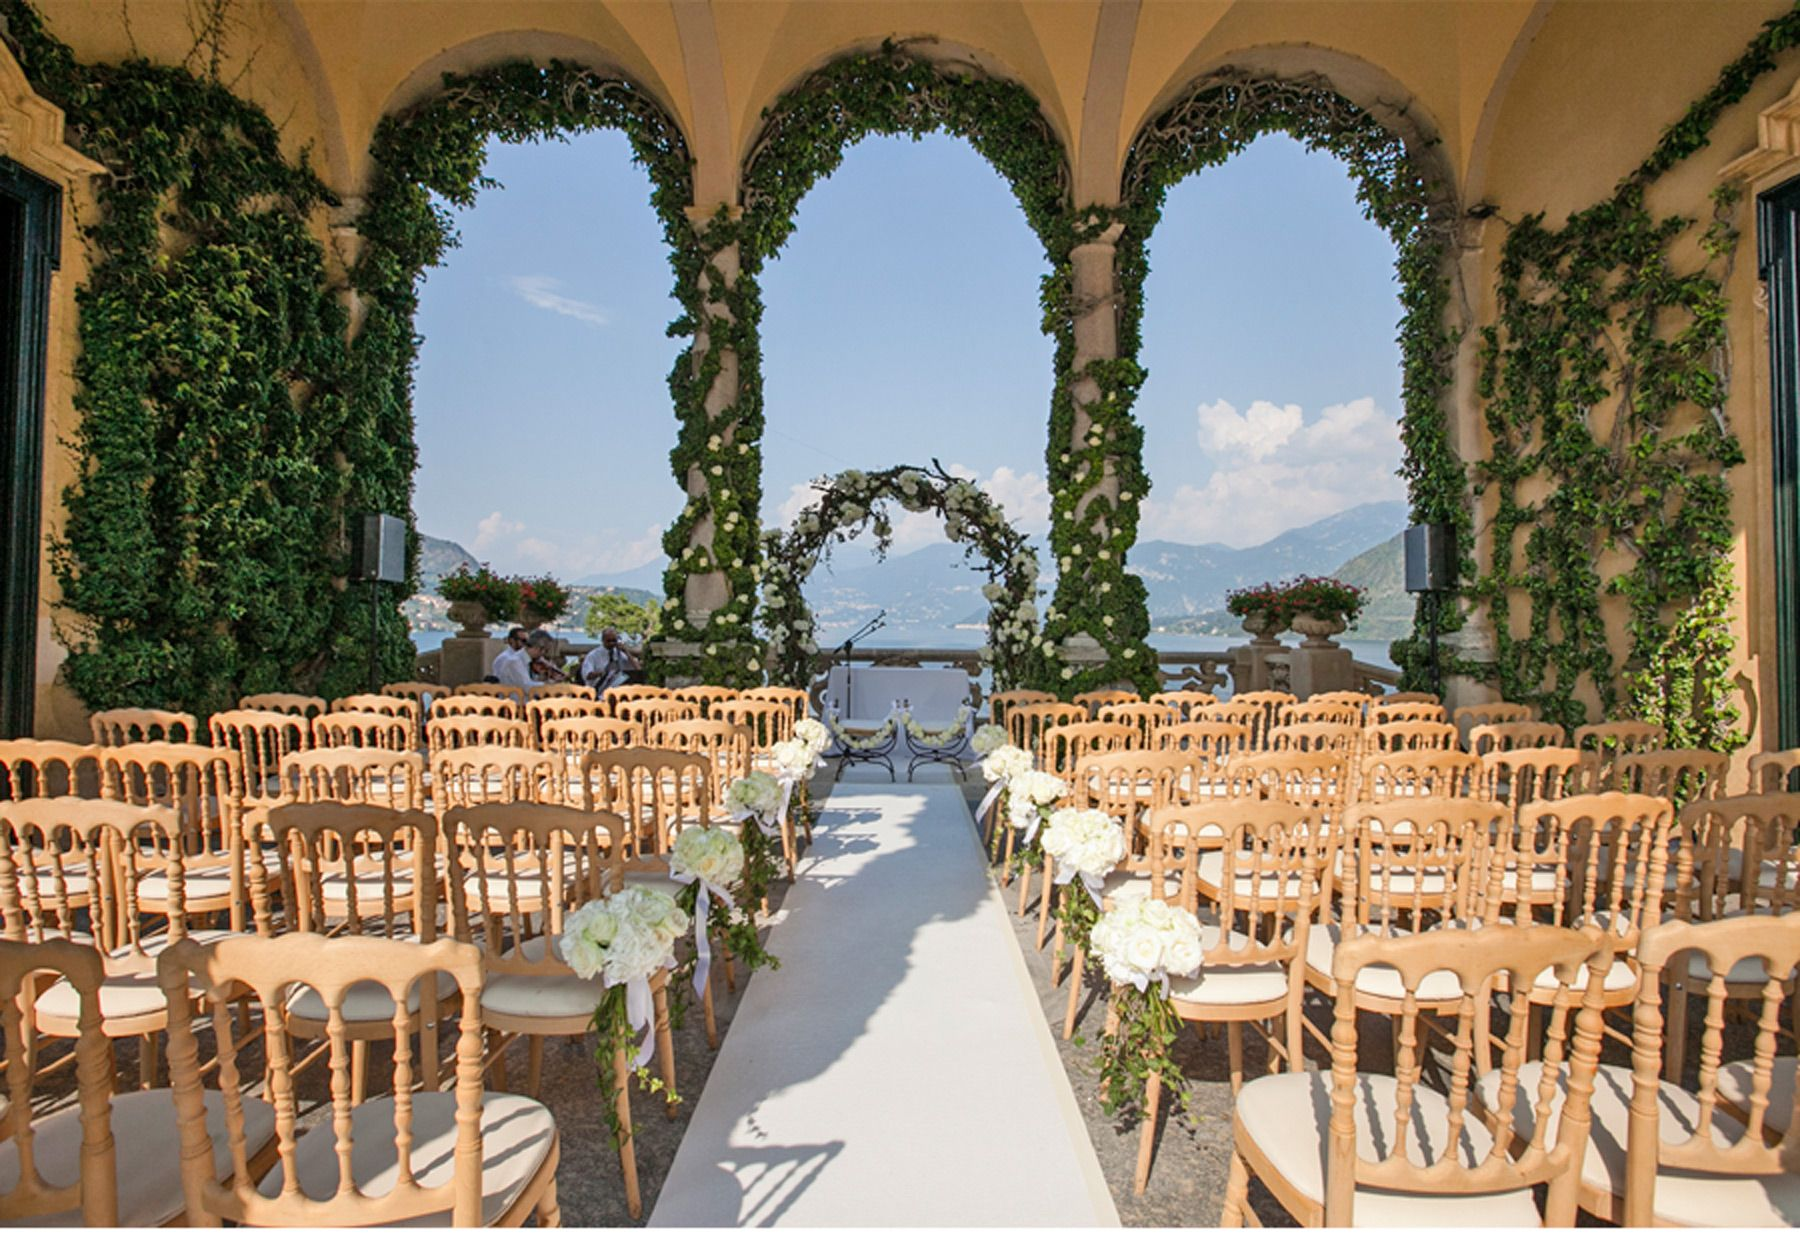 Our Muse Luxurious Lake Como Italy Wedding Be Inspired By Margie Ryan S In Scenic Northern